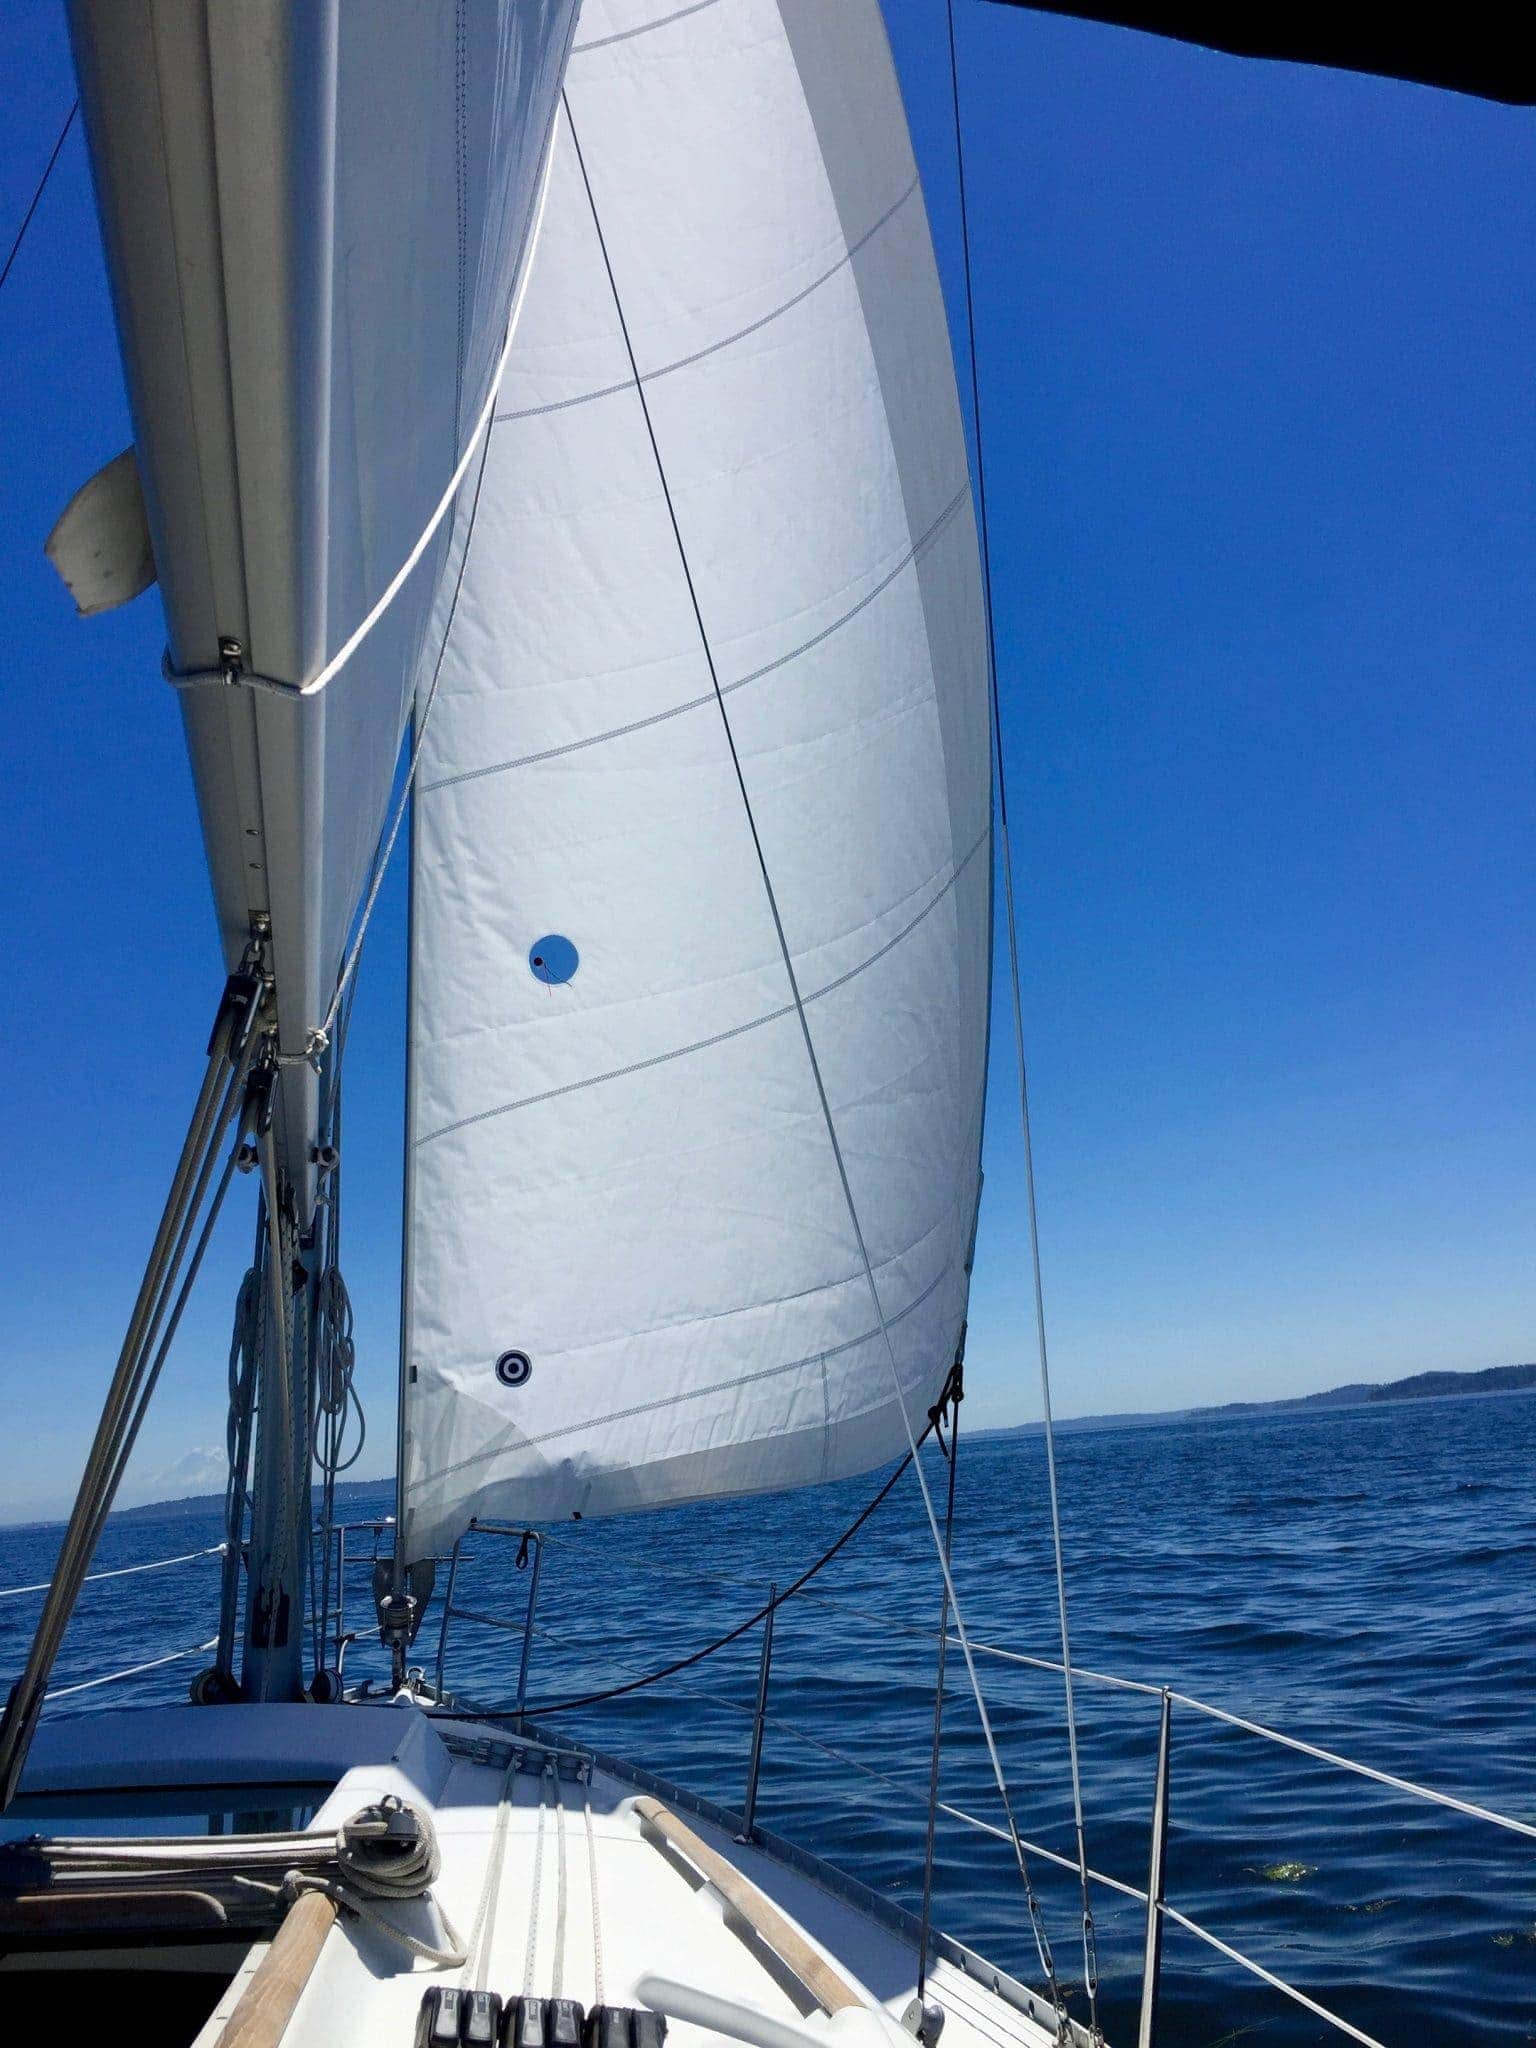 Sailing down the channel on the east side of Bainbridge towards Winslow